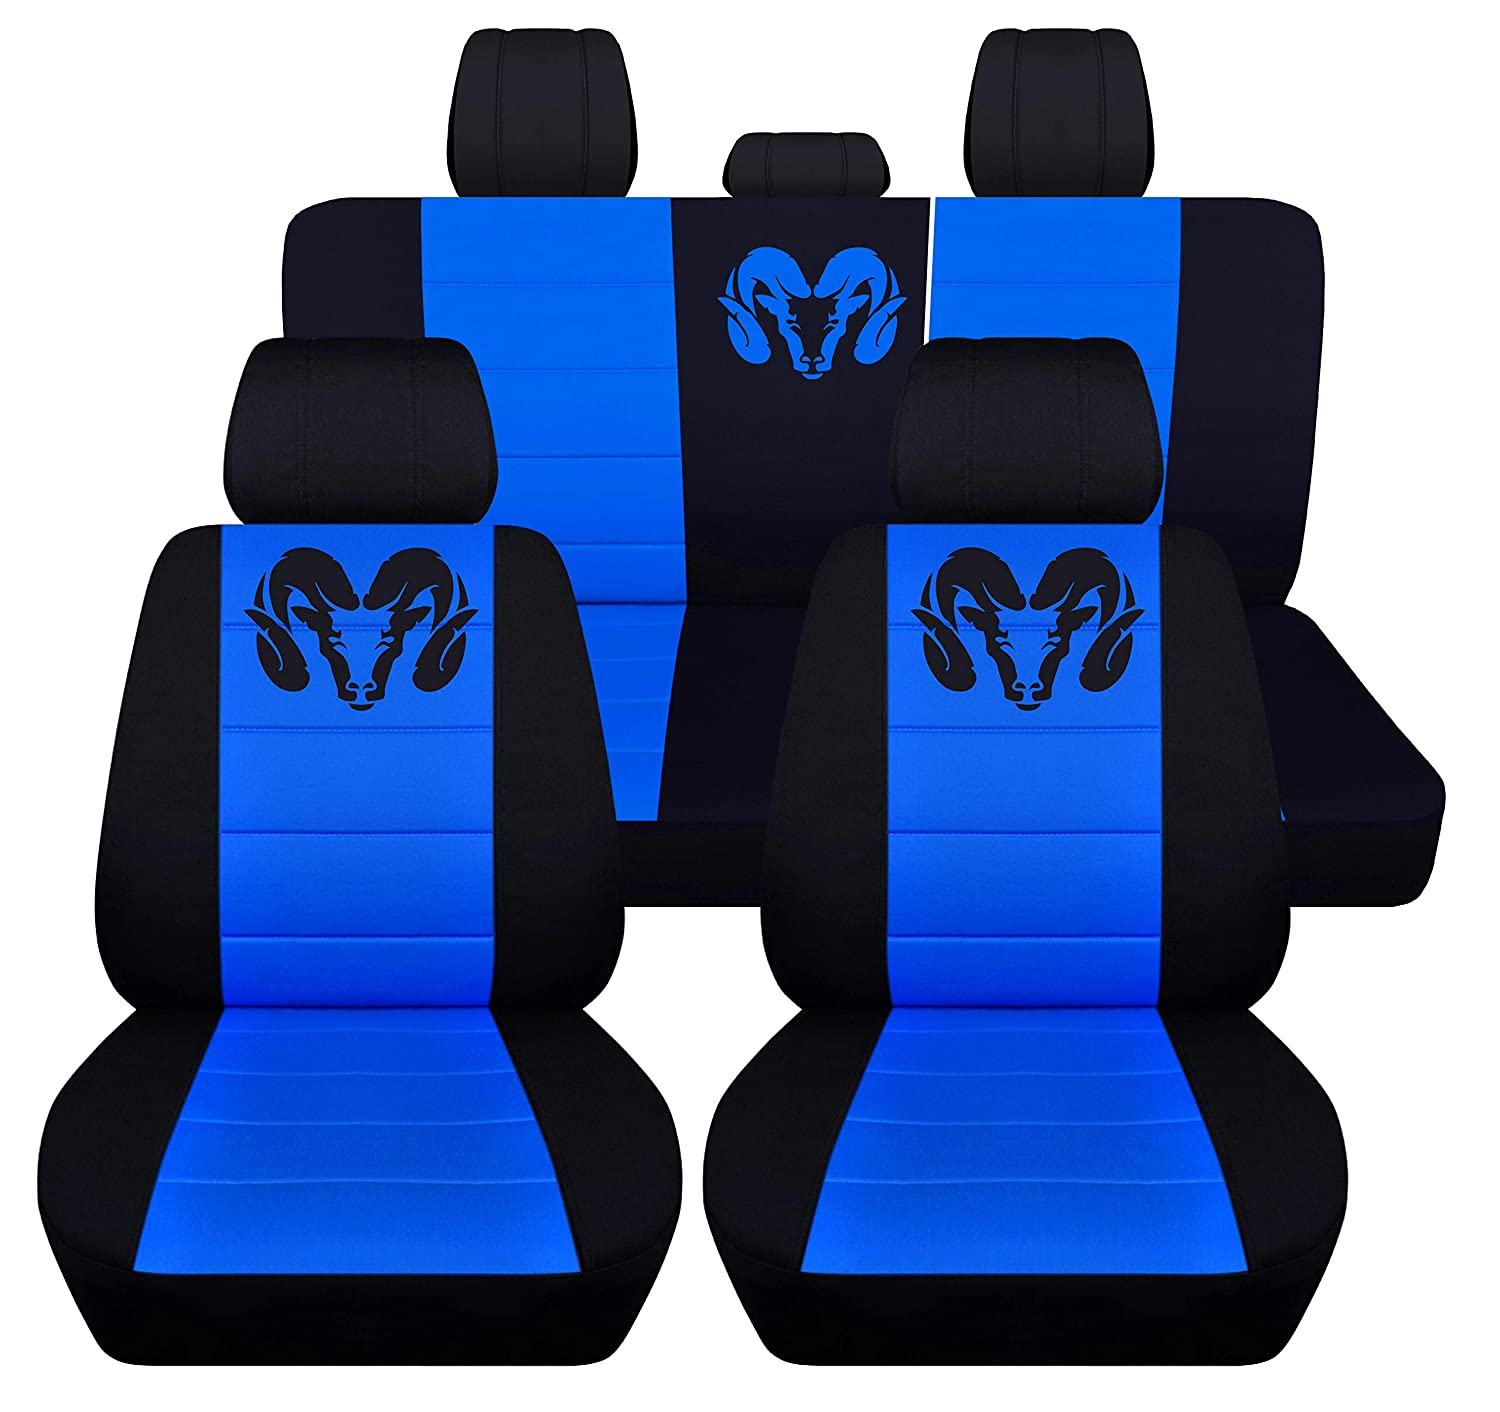 Fits 2012 to 2018 Dodge Ram Front and Rear Ram Seat Covers 22 Color Options 40-60 Rear with Armest, Black Burgundy